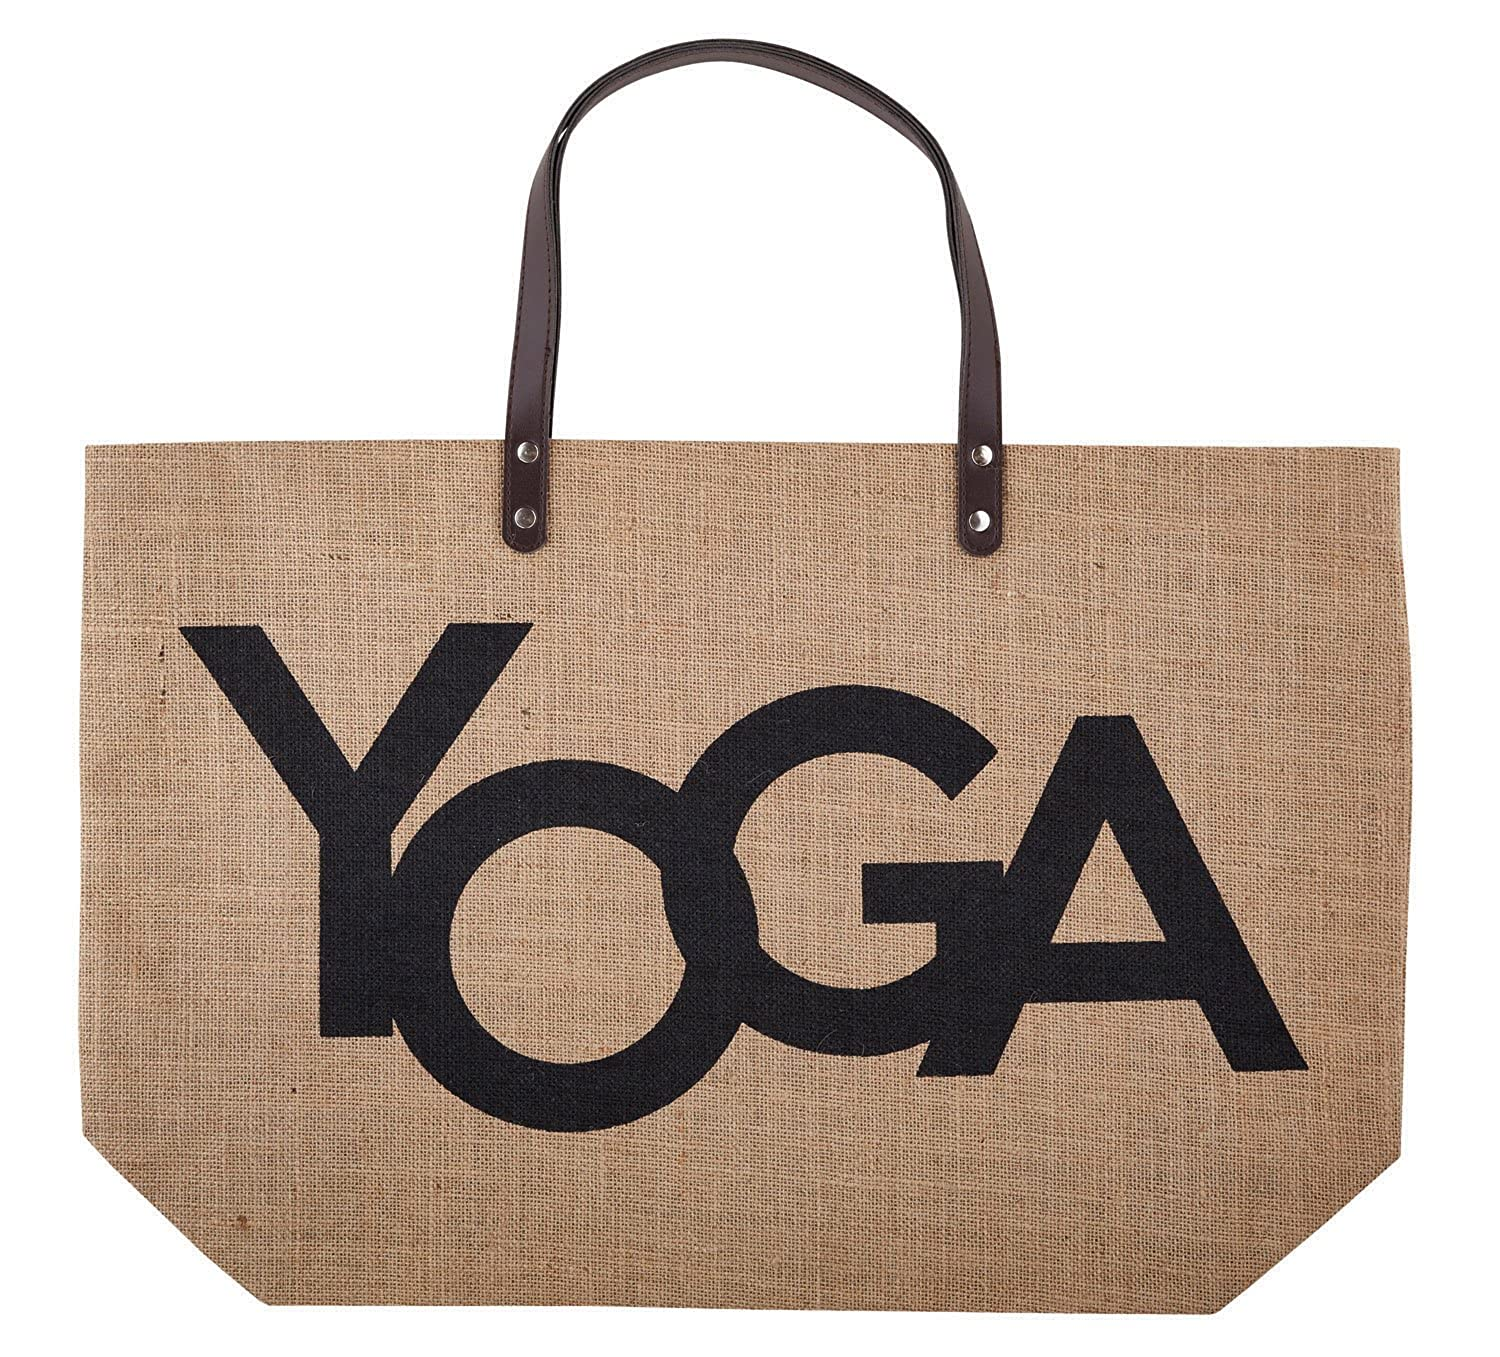 Amazon.com: Hold Everything Womens Large Jute Bag Tote ...